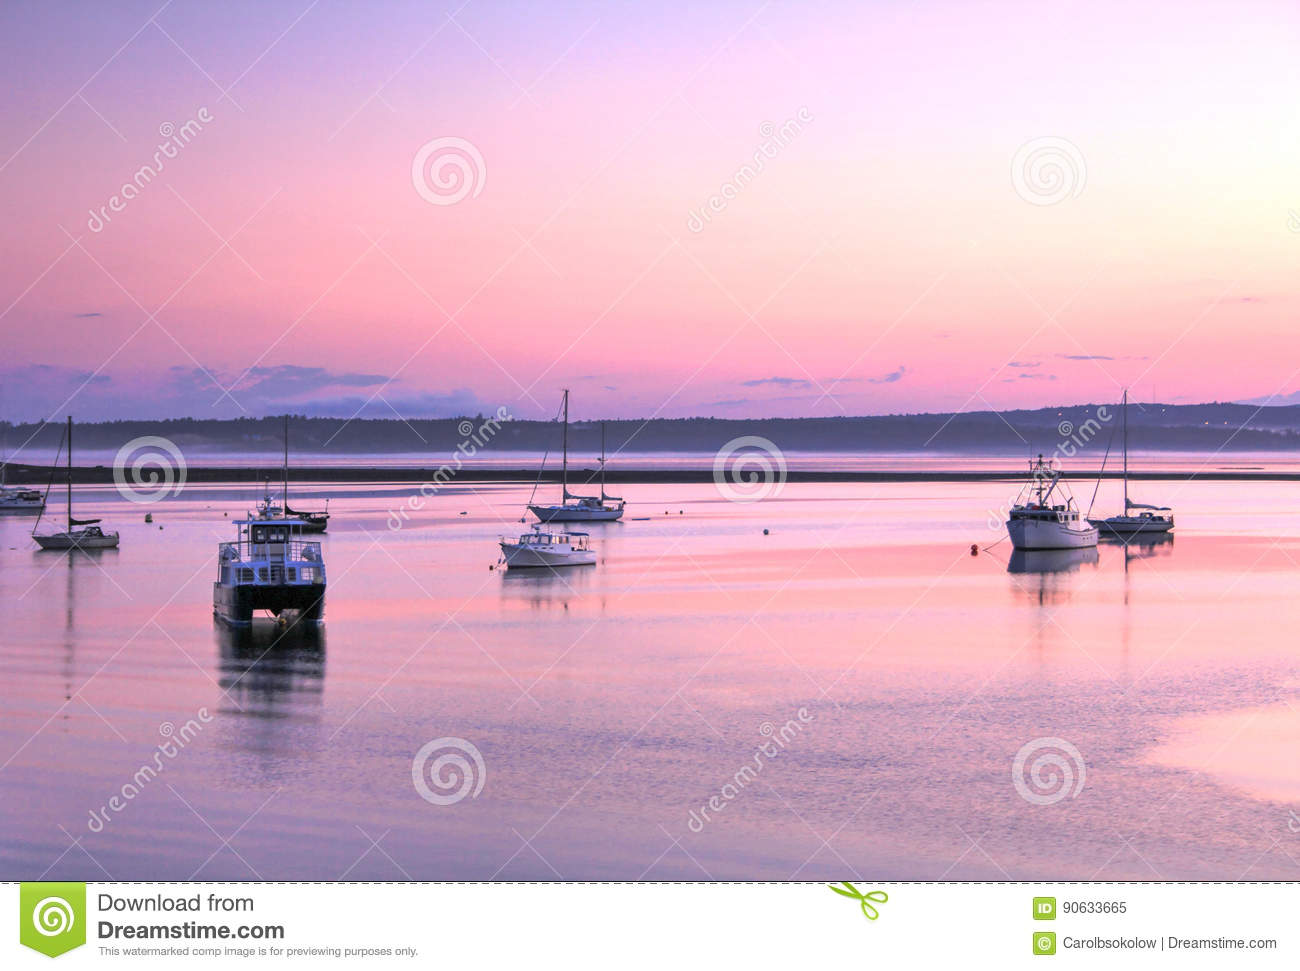 Boats at sunset, St. Andrews, New Brunswick